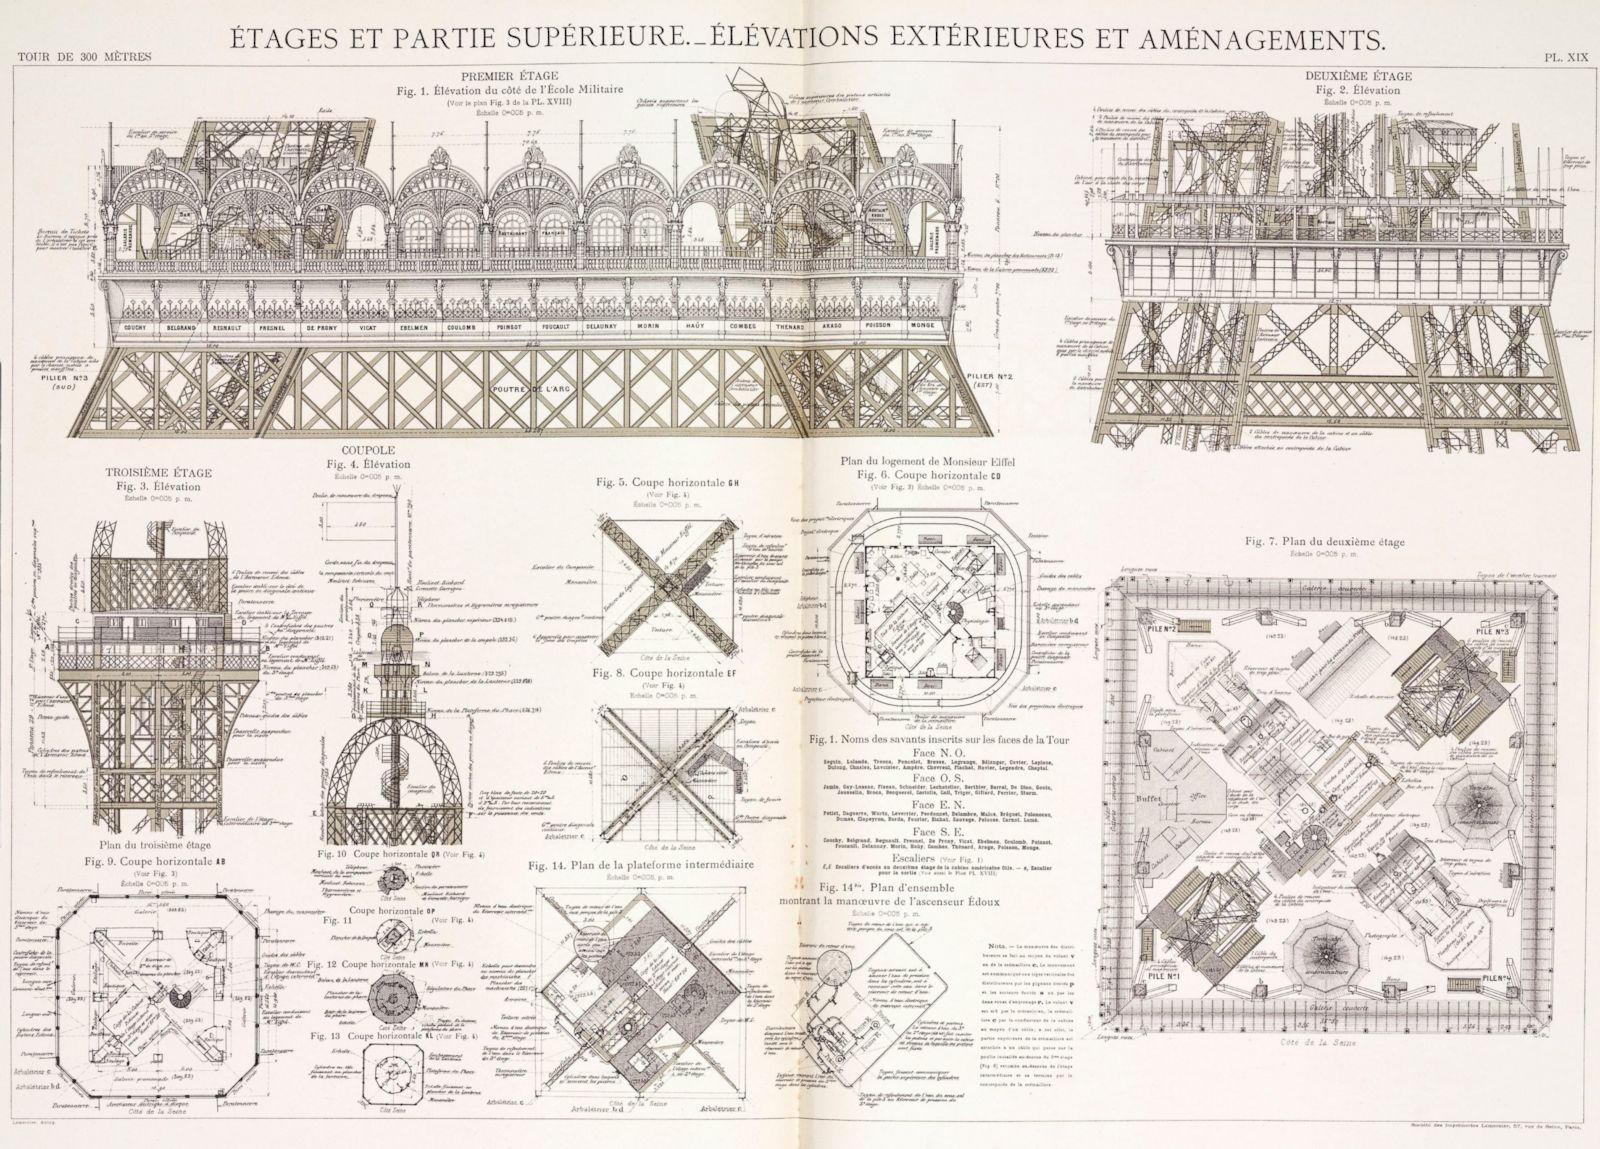 Eiffel Tower Technical Drawings Eiffel Tower's Construction